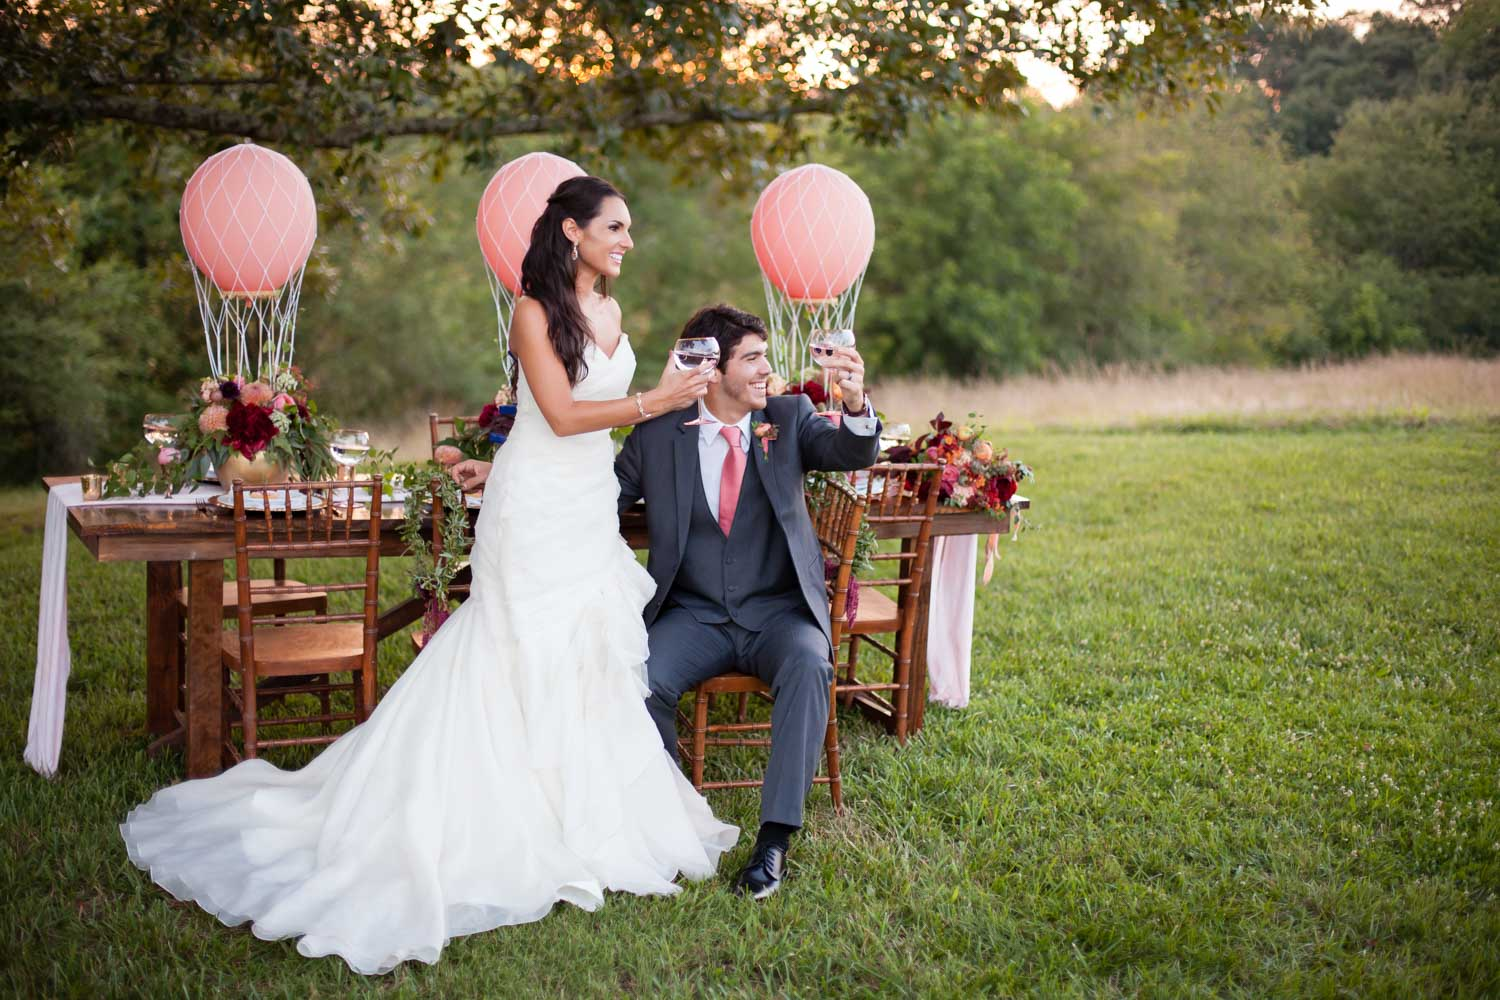 bride-and-groom-at-outdoor-reception-chey-photography-sweet-meadow-109